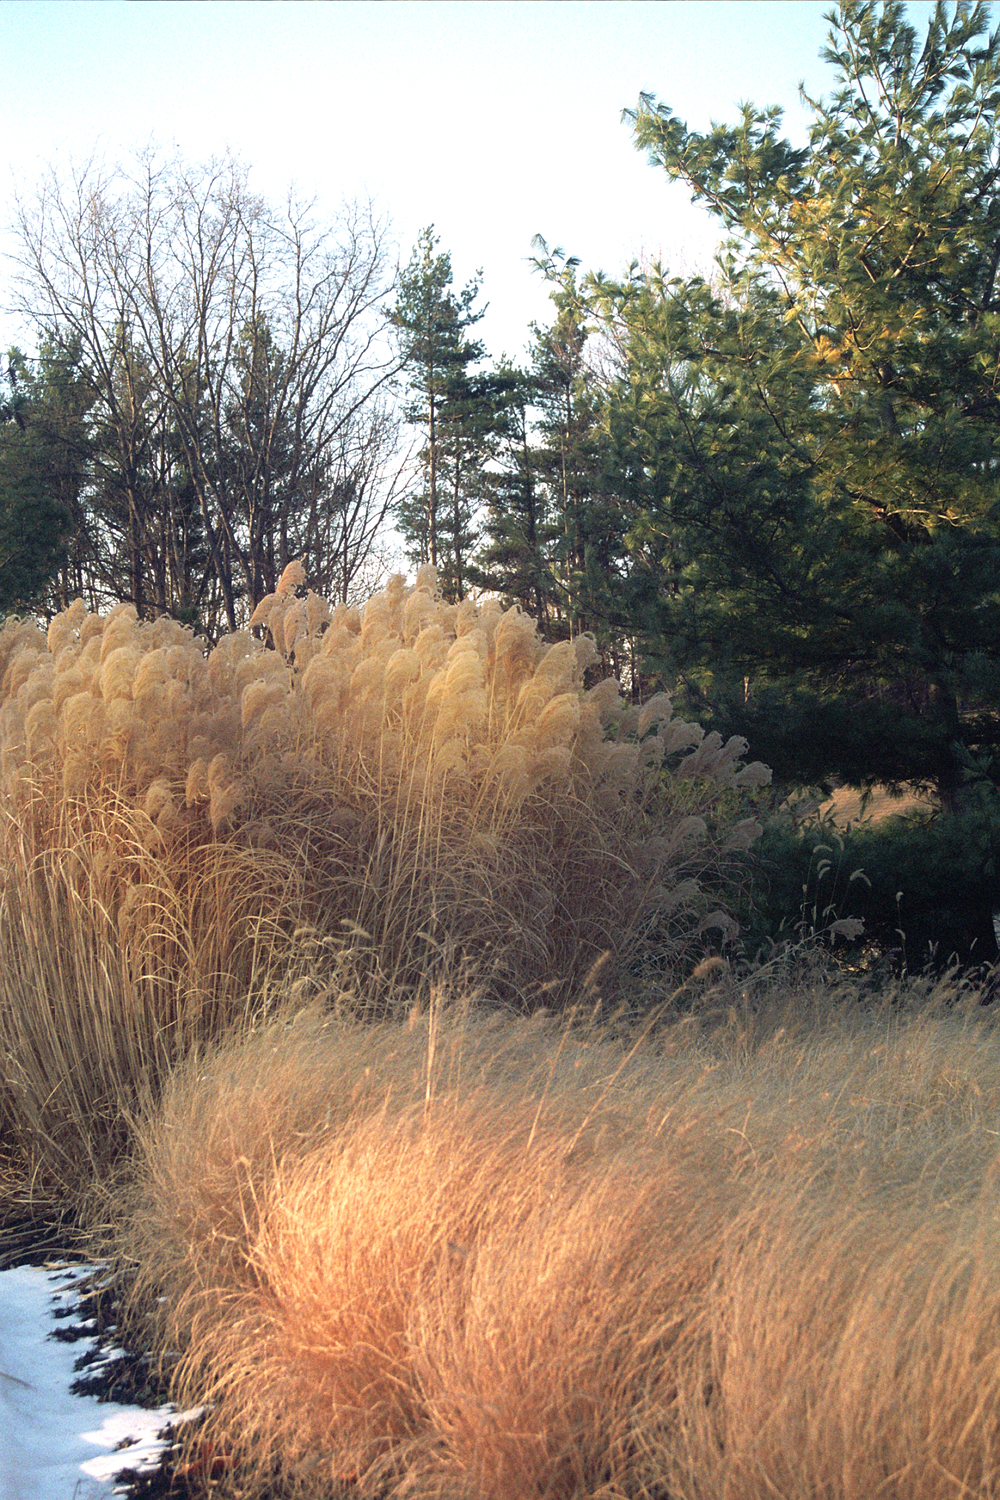 Winter Wheat Colored Ornamental Grasses